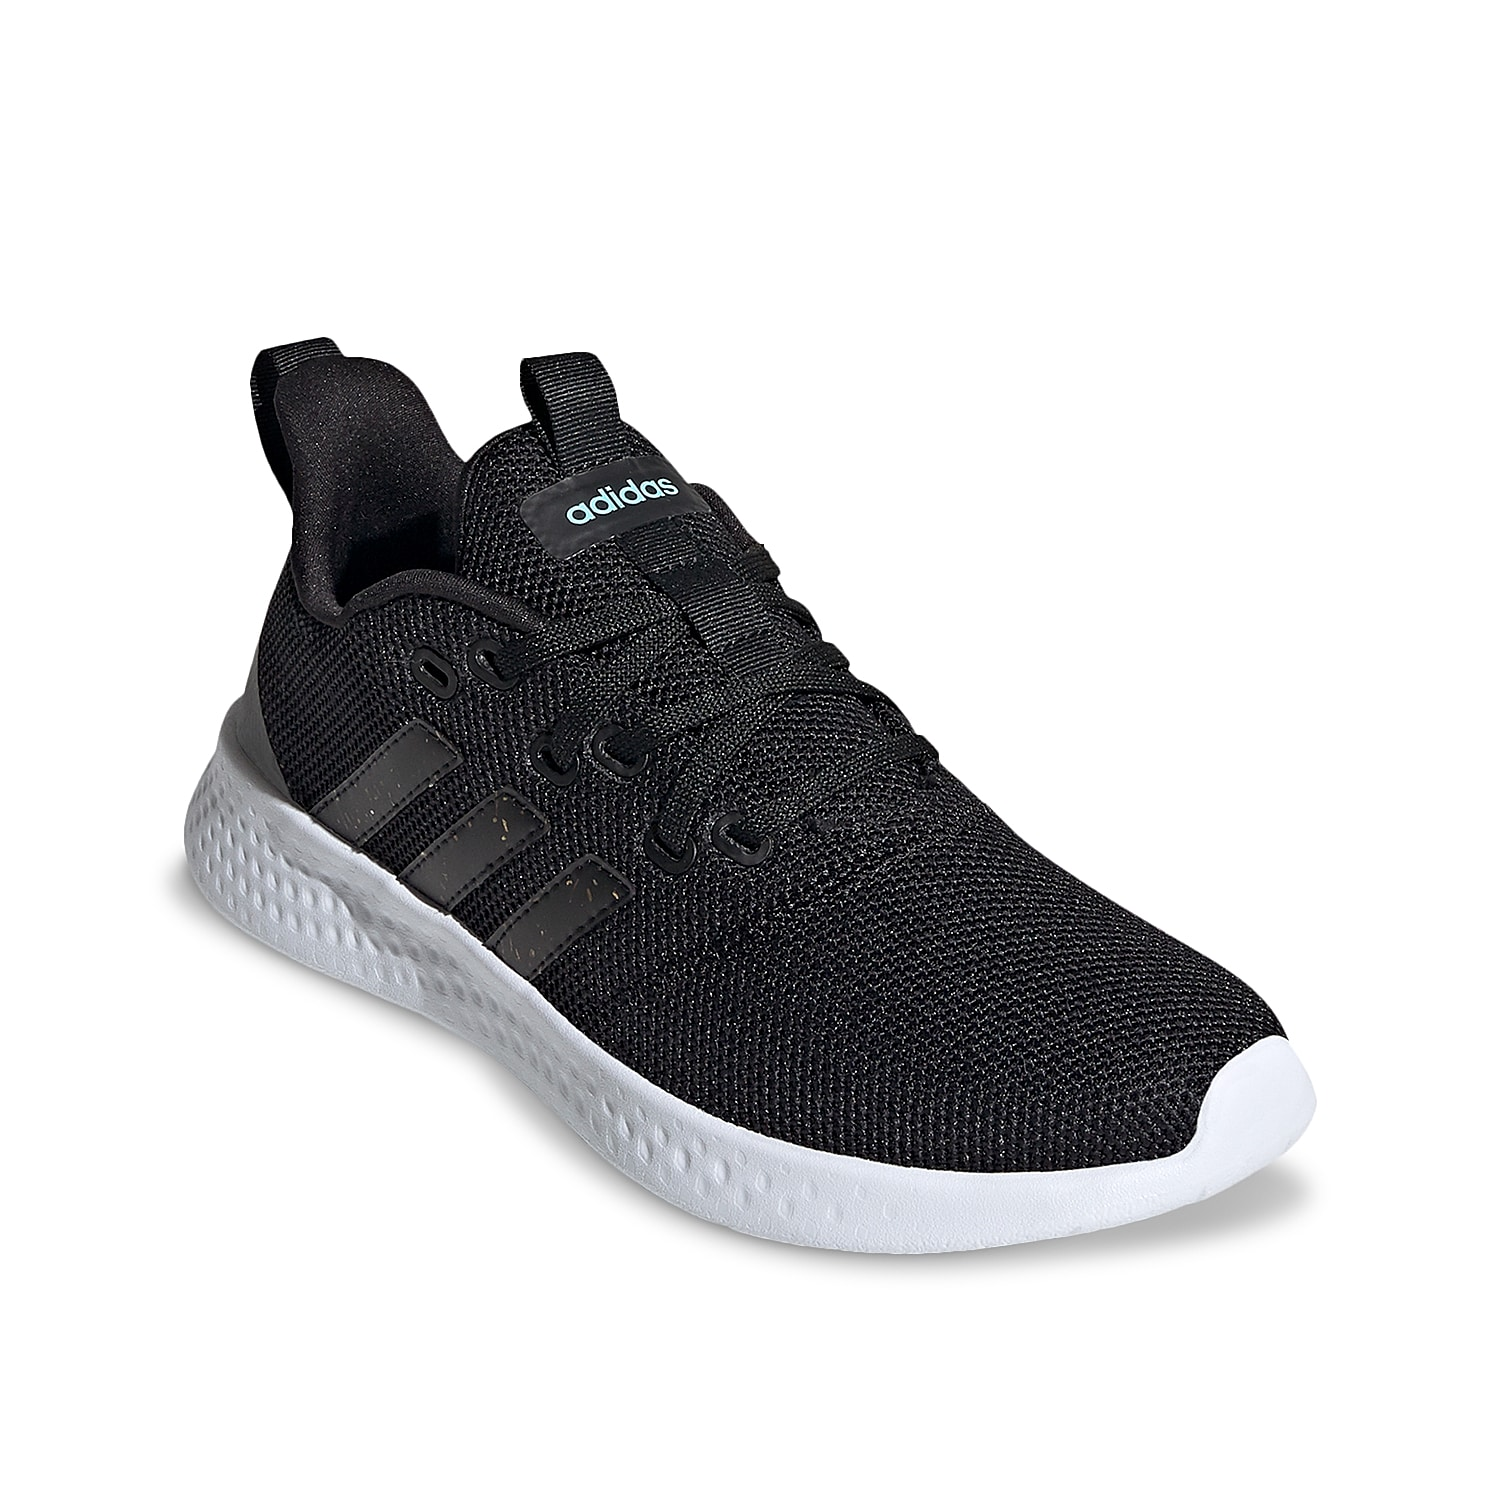 For active days on the go, the women\\\'s Puremotion athletic sneaker from adidas will be perfect for you. This lightweight low-top features a breathable mesh upper and a cloudfoam midsole that will take your workouts to the next level!